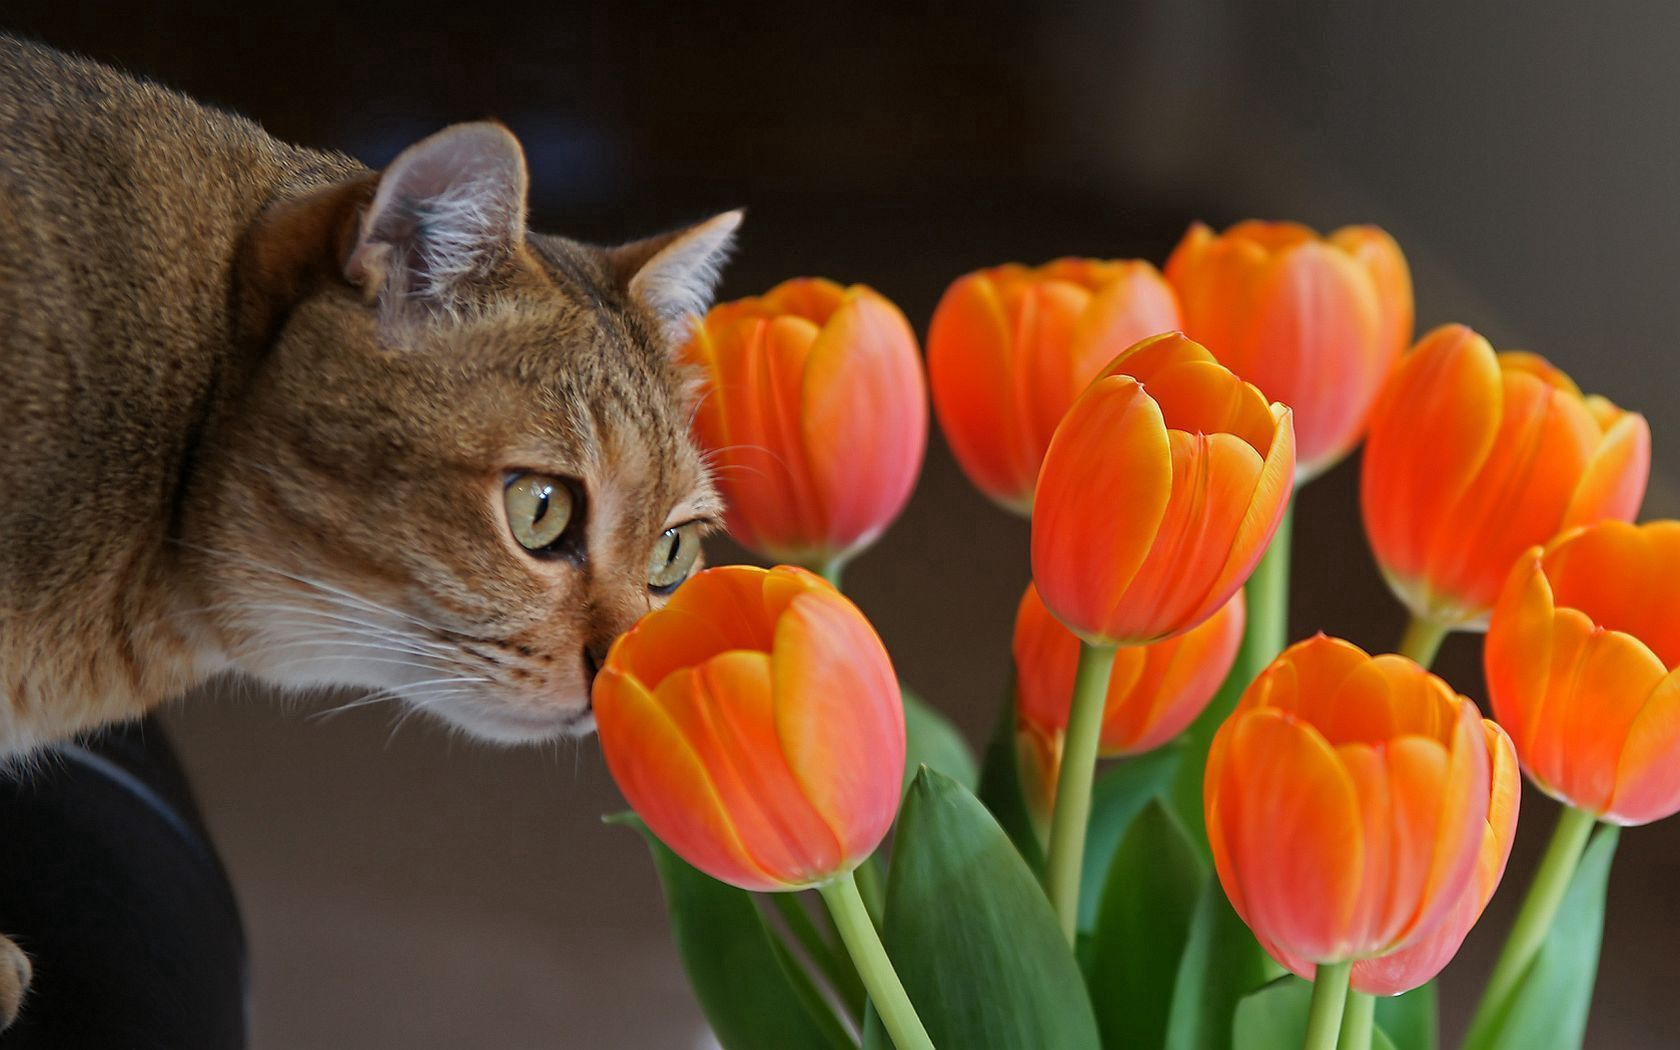 88483 download wallpaper Animals, Cat, Muzzle, Curiosity, Tulips screensavers and pictures for free